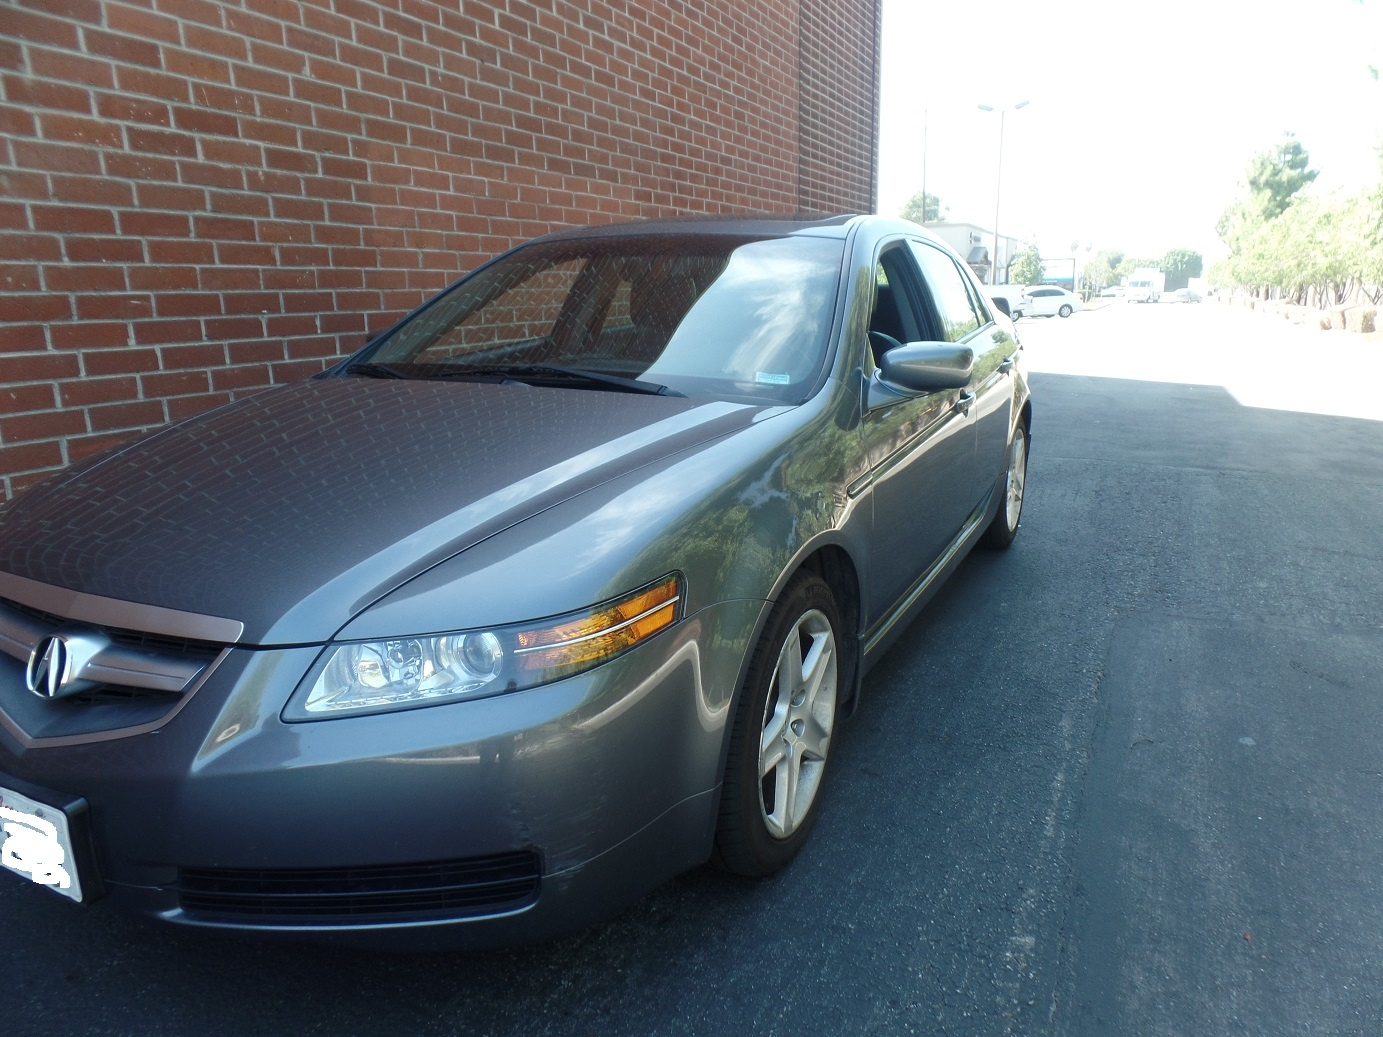 2006 acura tl 5 spd at for sale in los angeles ca cargurus. Black Bedroom Furniture Sets. Home Design Ideas